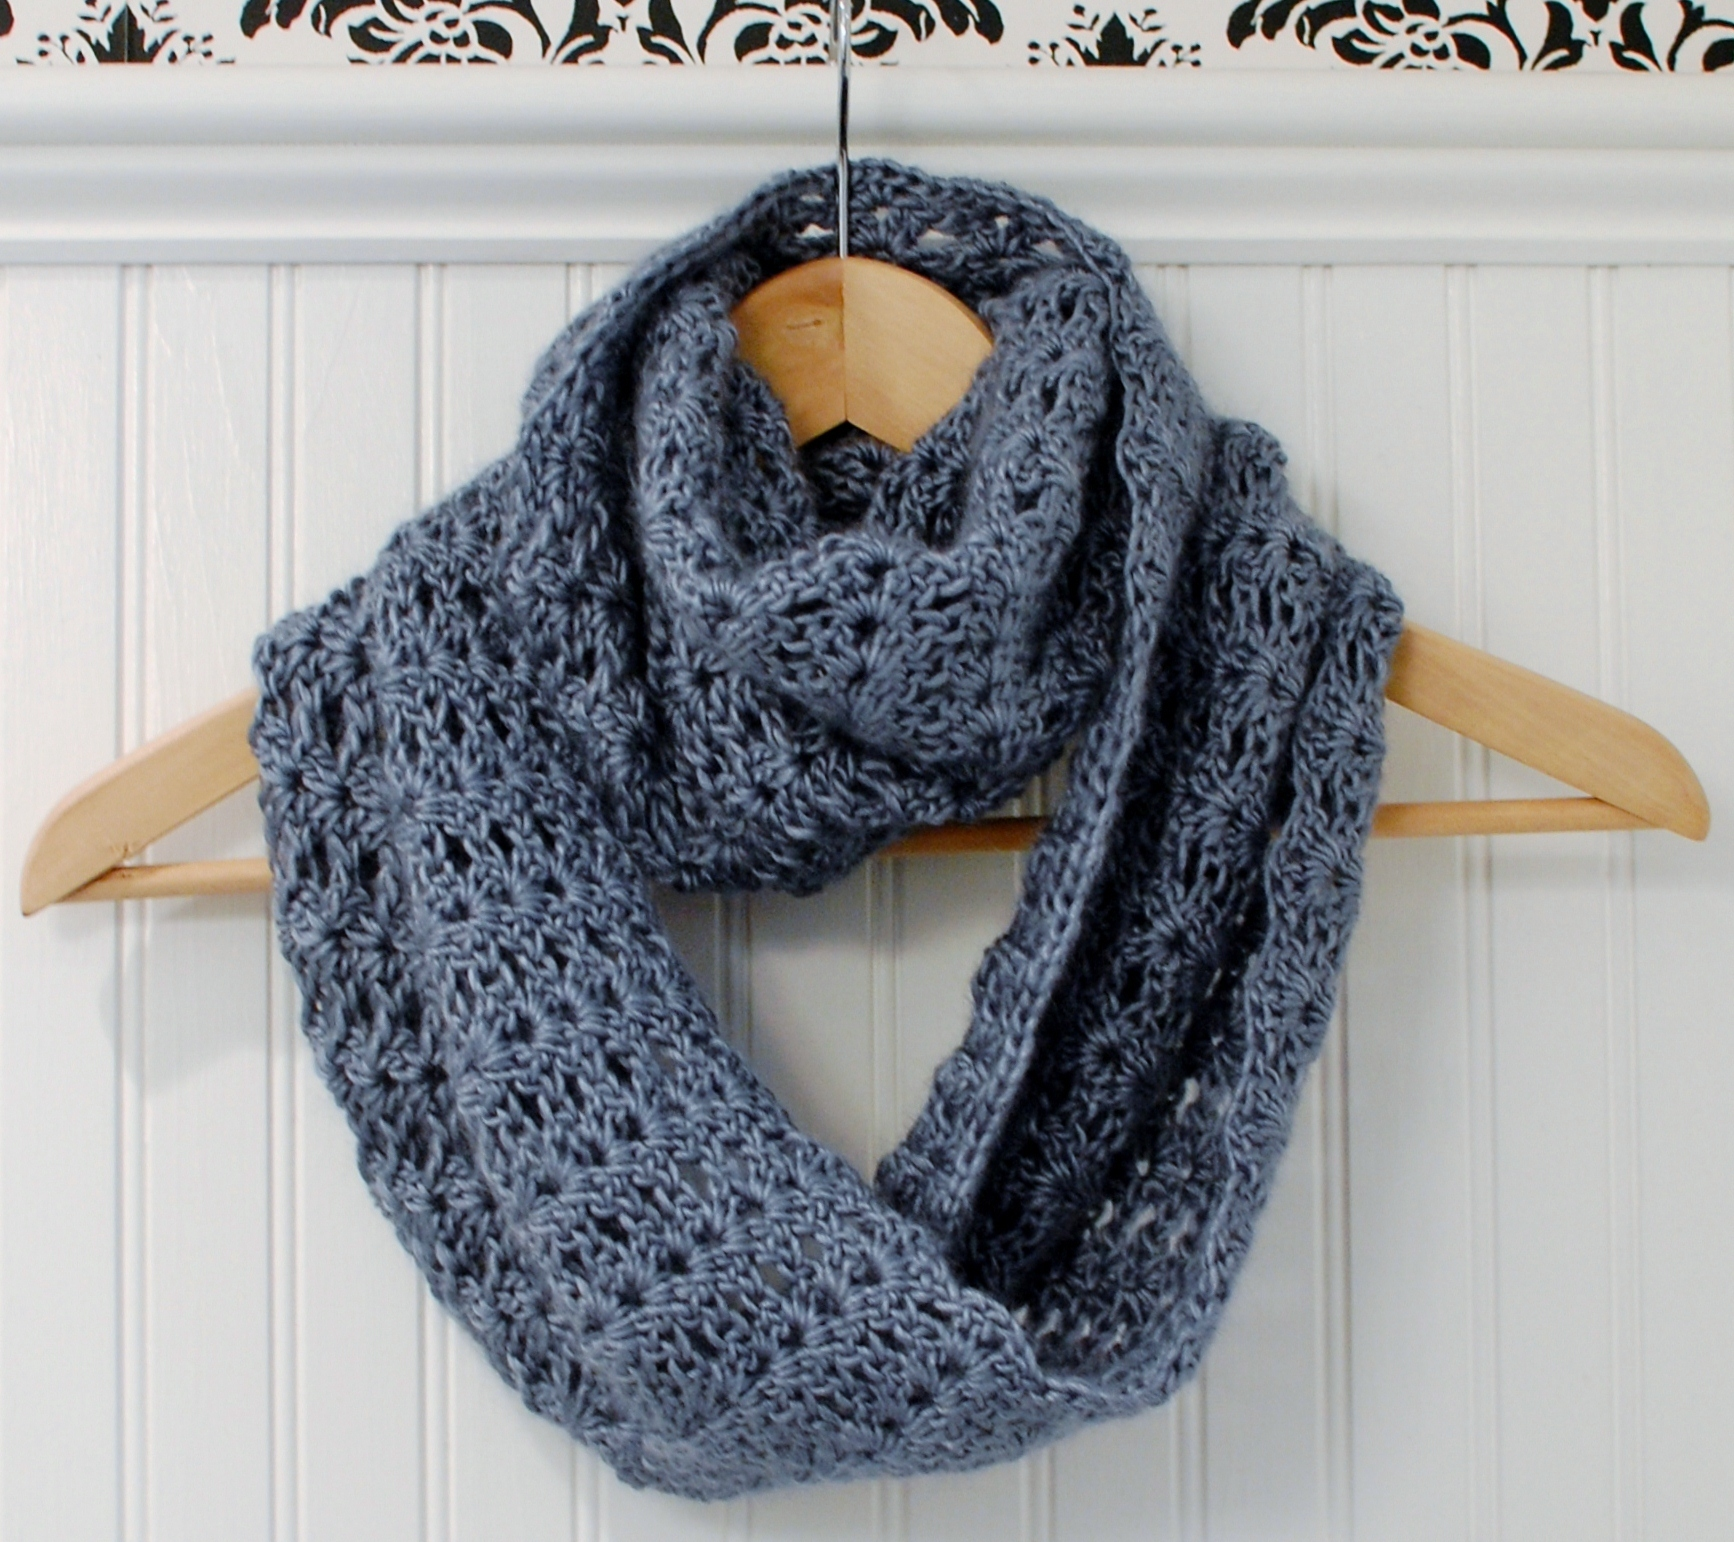 Crochet Infinity Scarf : Crochet Pattern - Mobius Infinity Scarf / Wrap (includes instructions ...